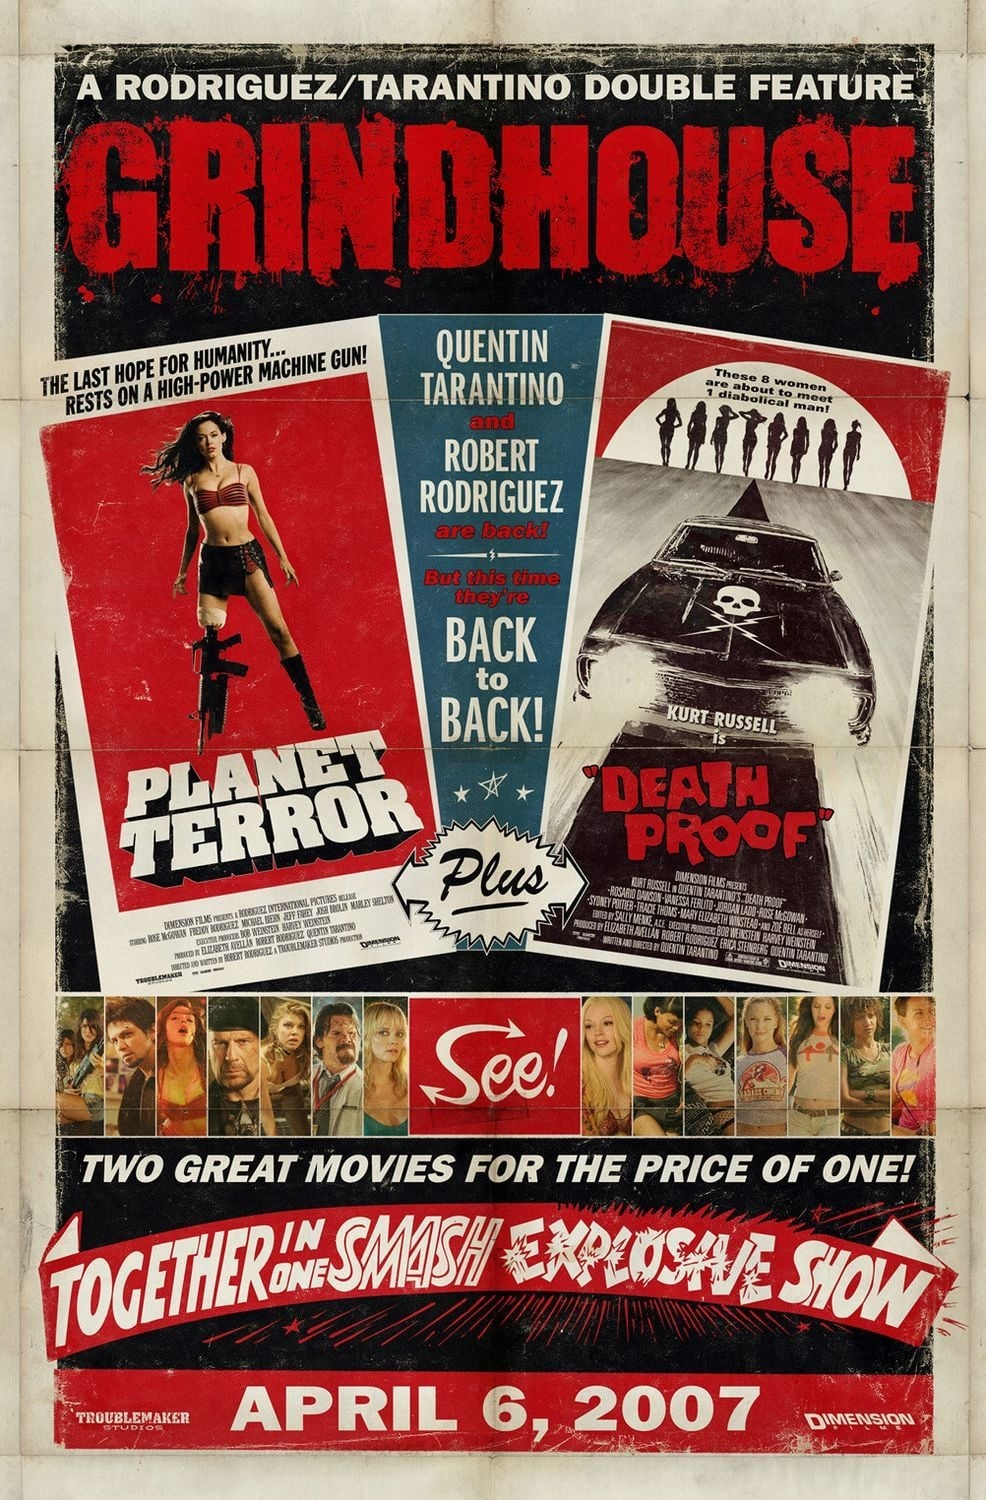 grindhouse tradition made to play like a midnight movie in the horrors of war Horrors of war - 2006 horrors of war derives from the b movie, grindhouse tradition, made to play like a like a midnight movie it is an independently-produced film made in a b-movie style, yet with a dramatic.